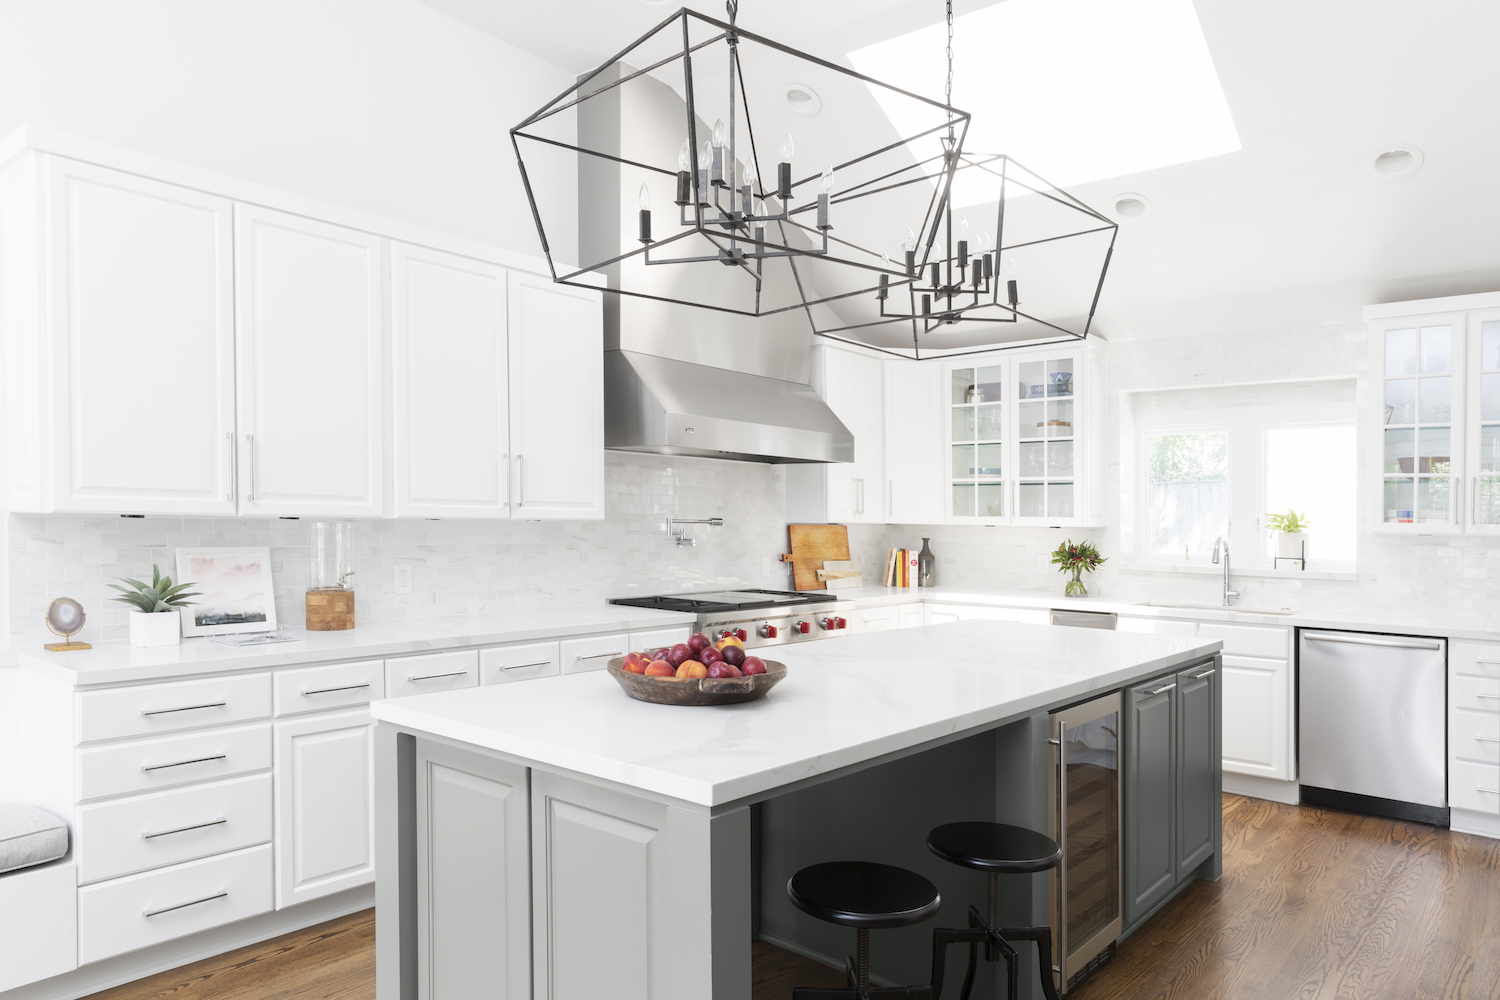 decorative-kitchen-lighting